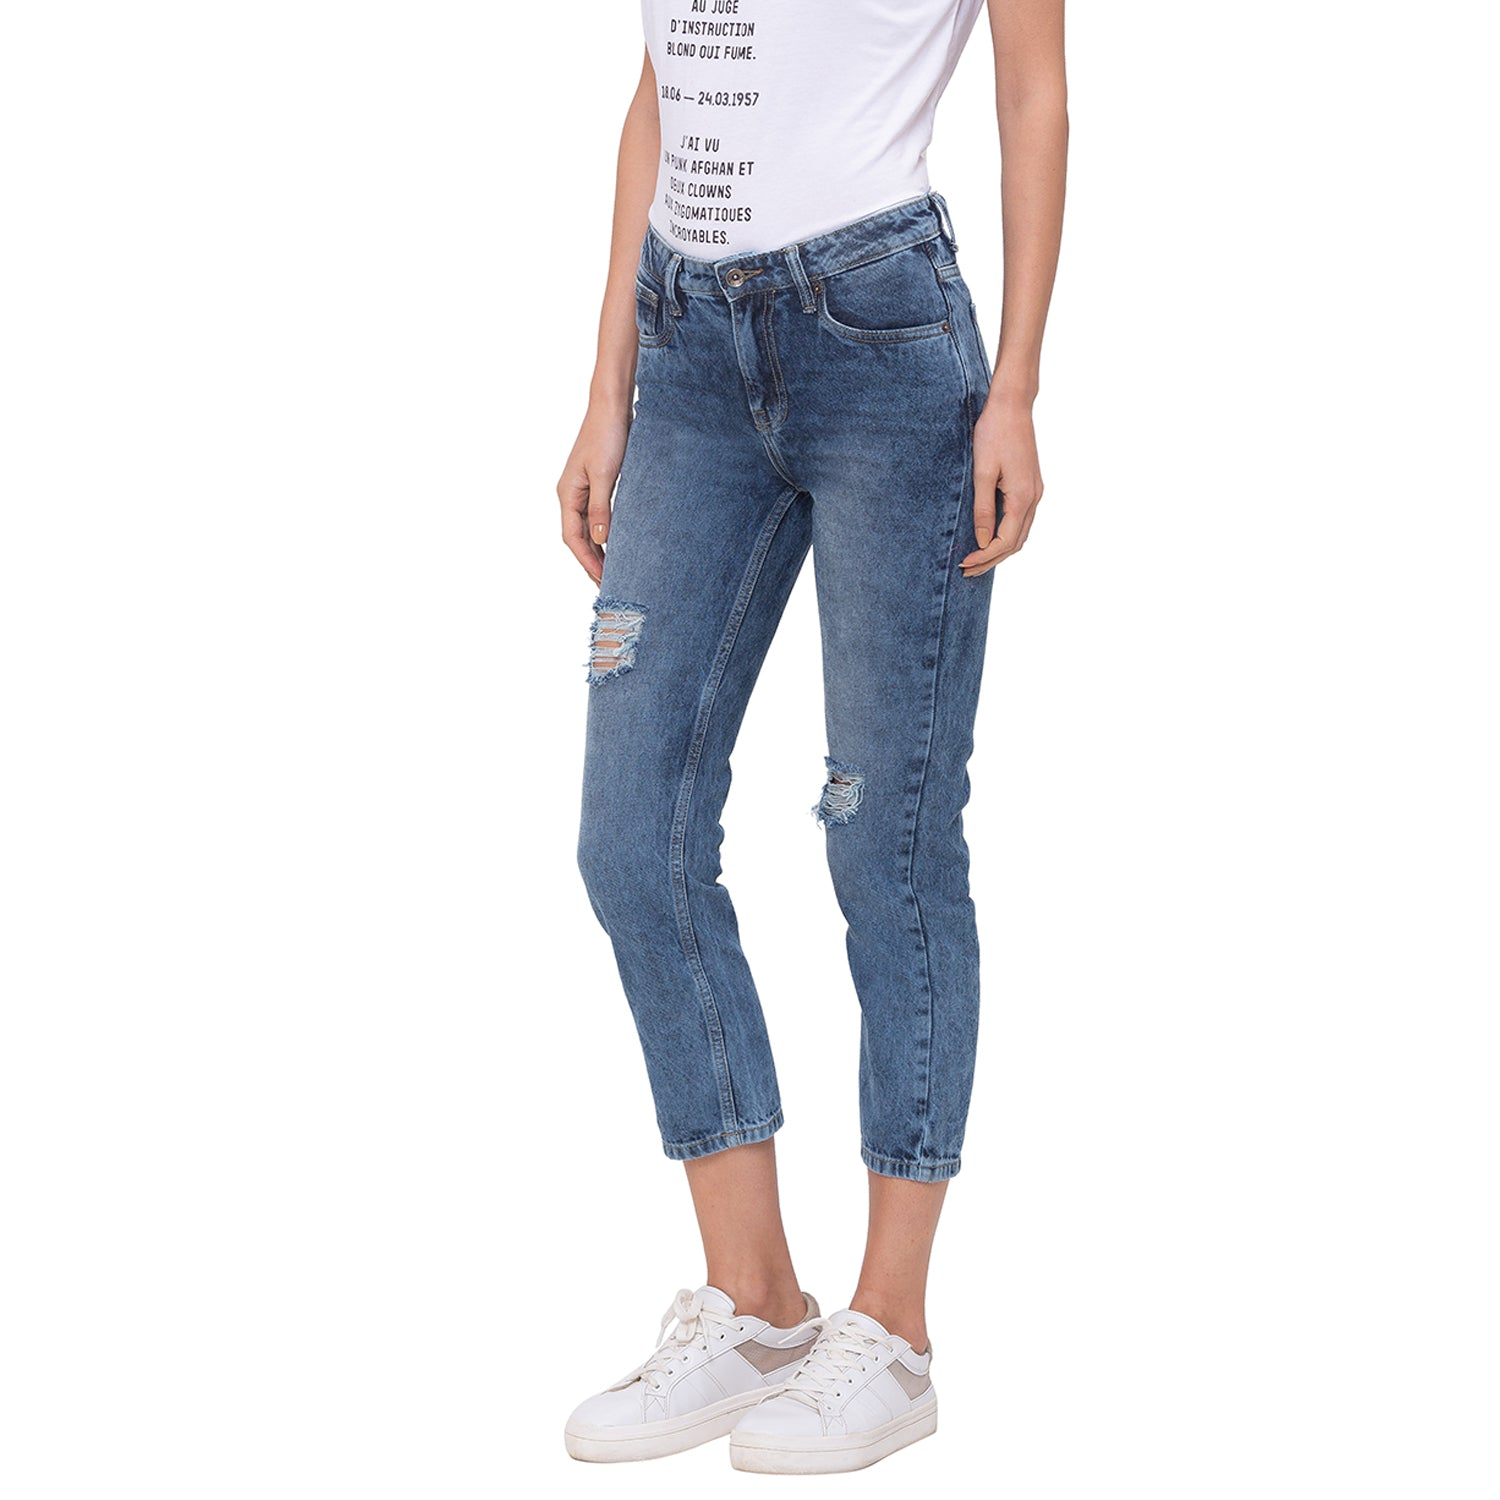 Globus Blue Washed Jeans-2